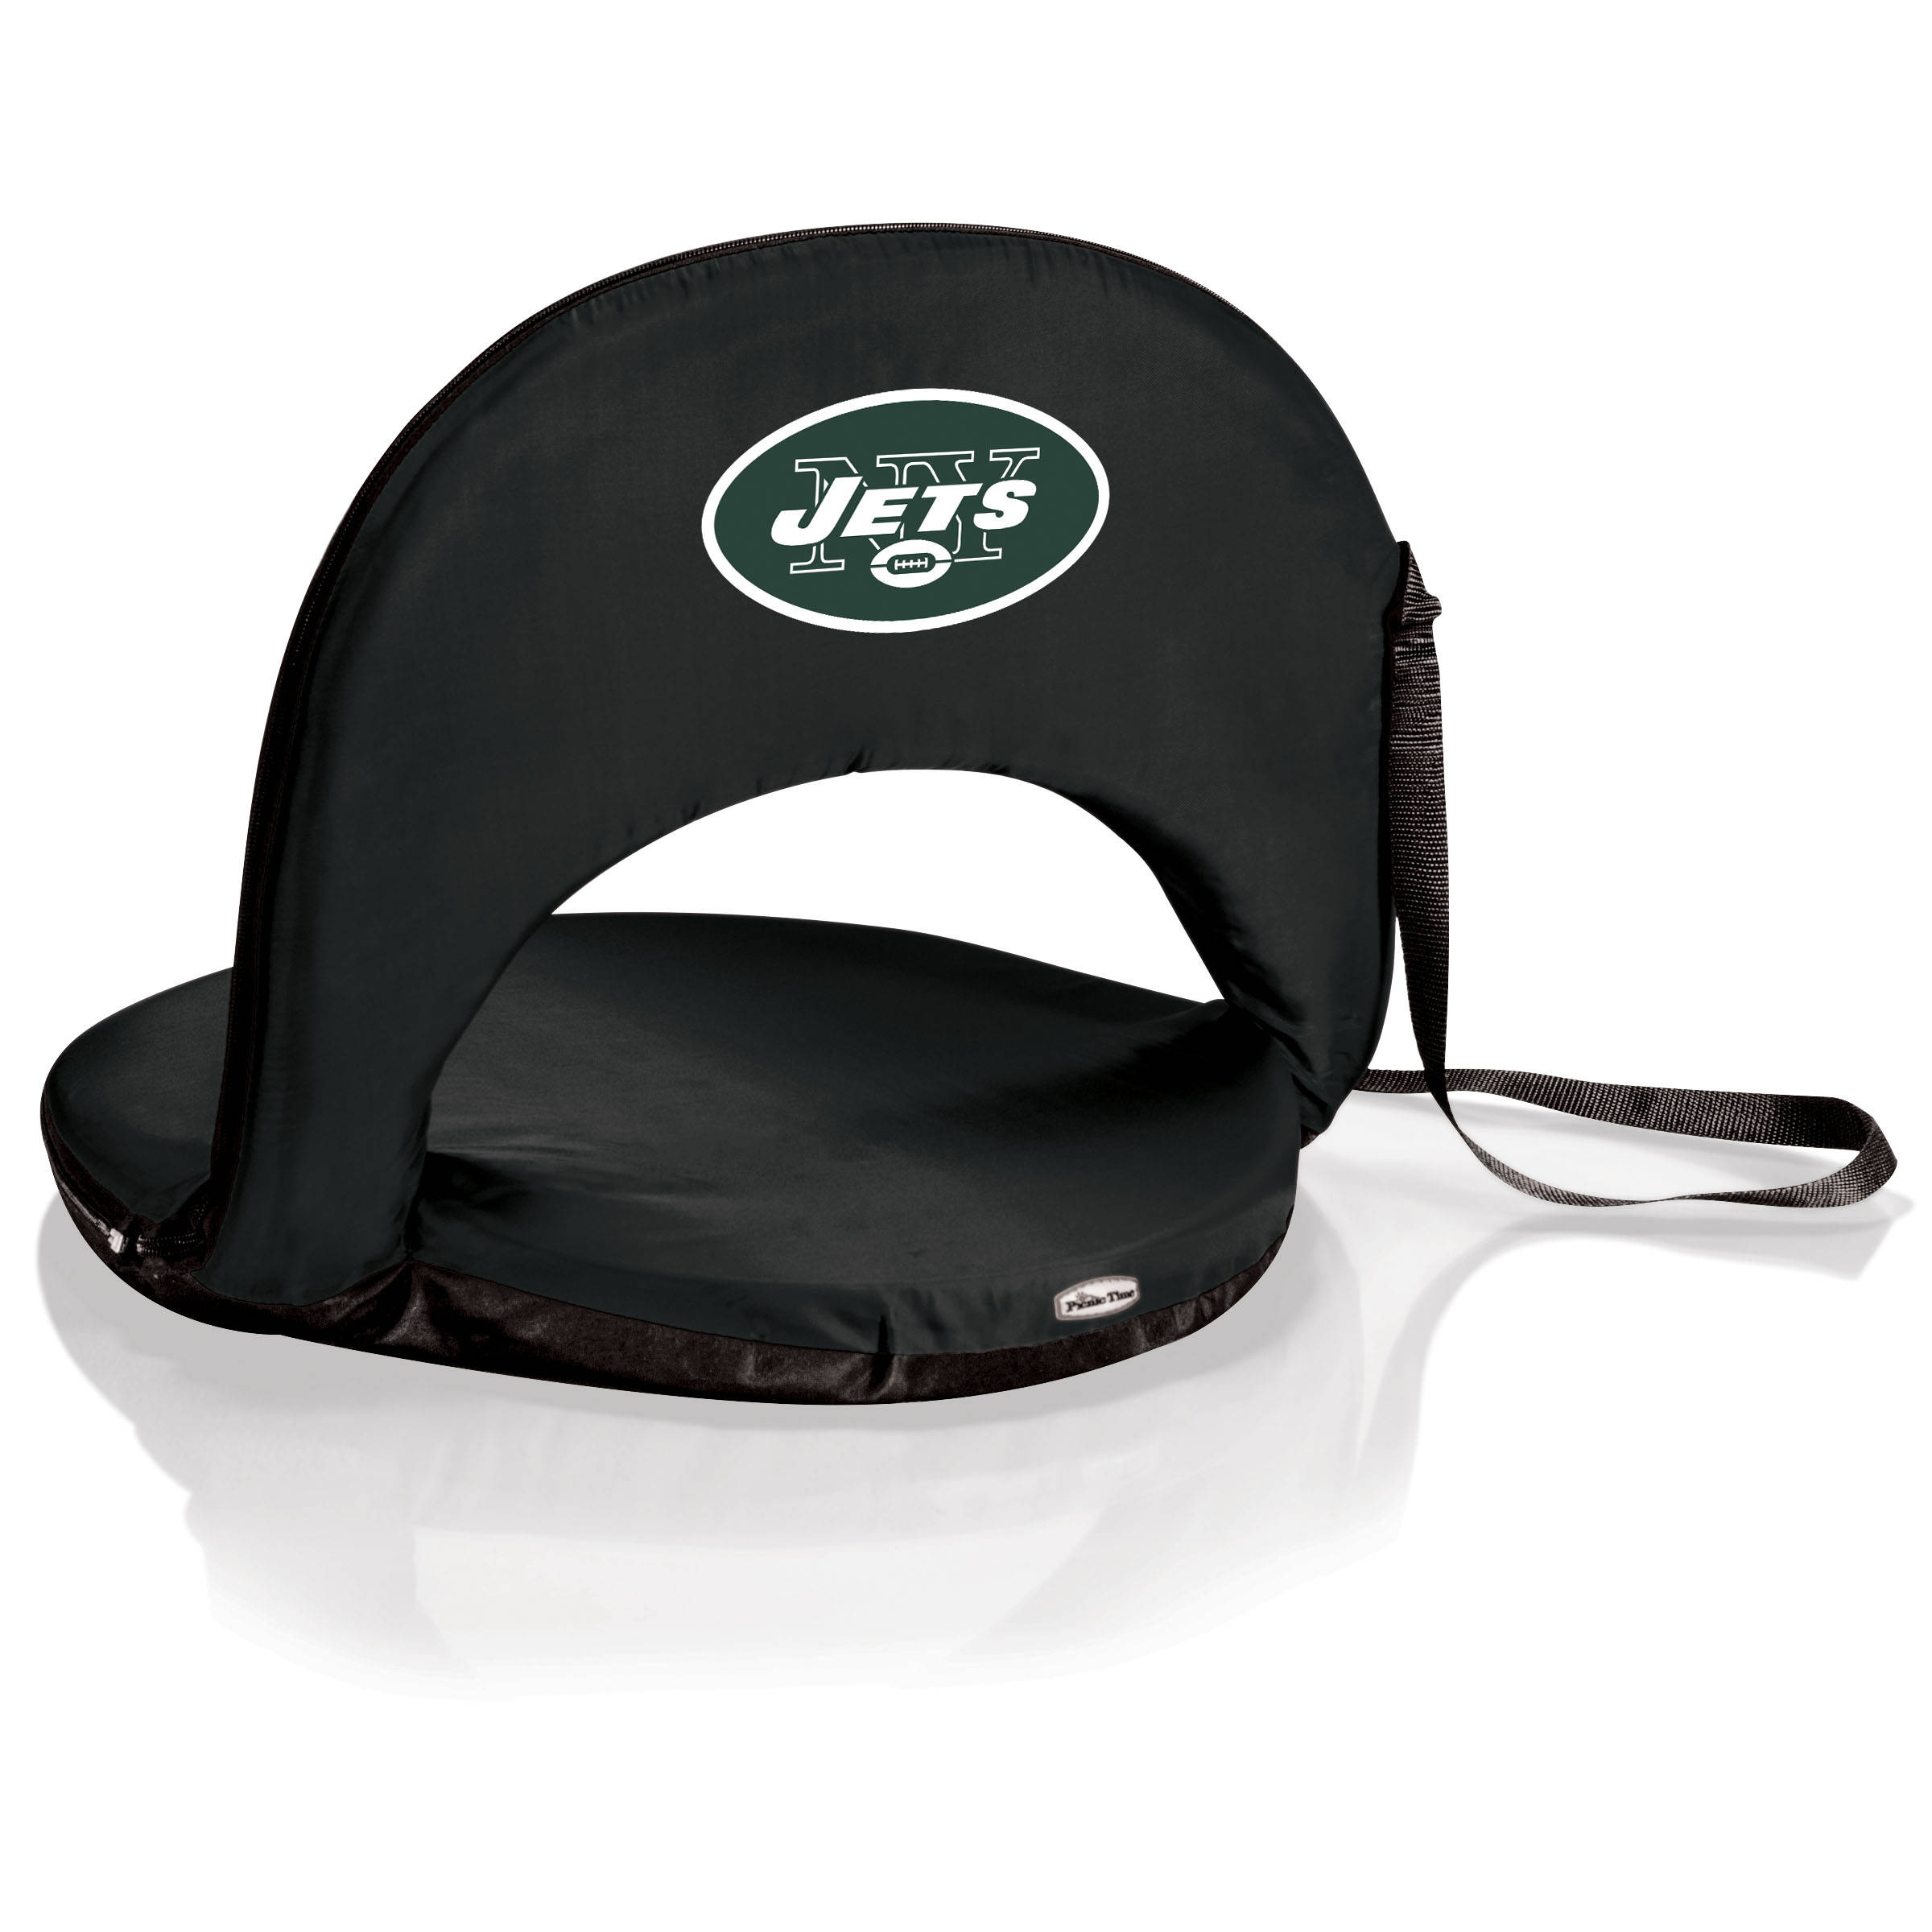 Picnic Time Nfl Oniva Seat New York Jets